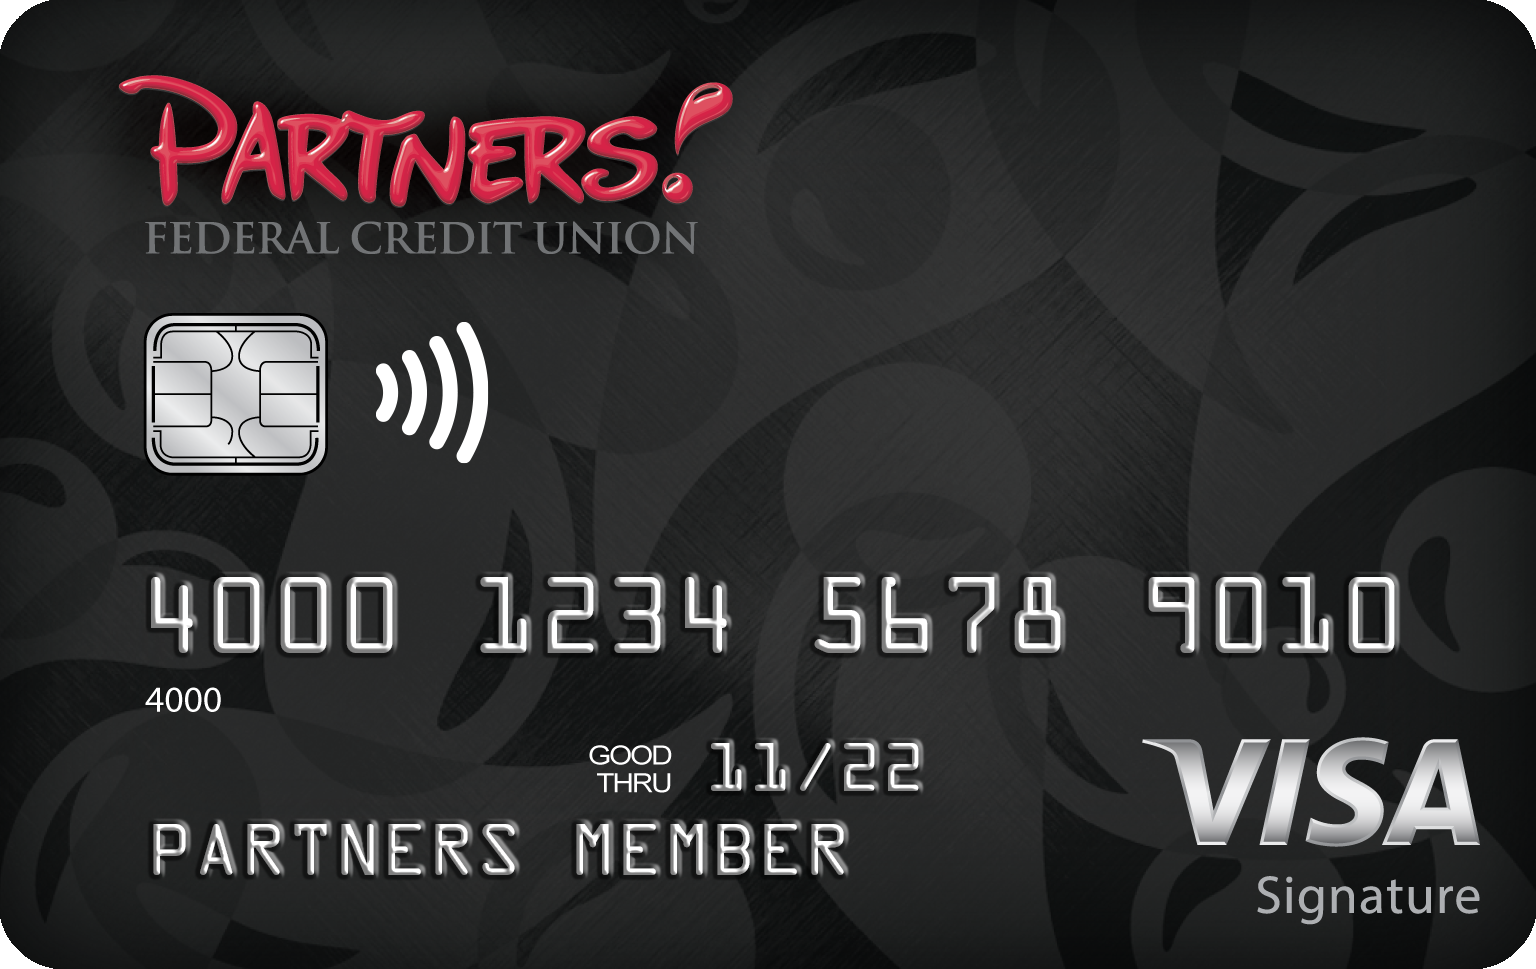 Partners-Visa-Signature-Card-withImprint